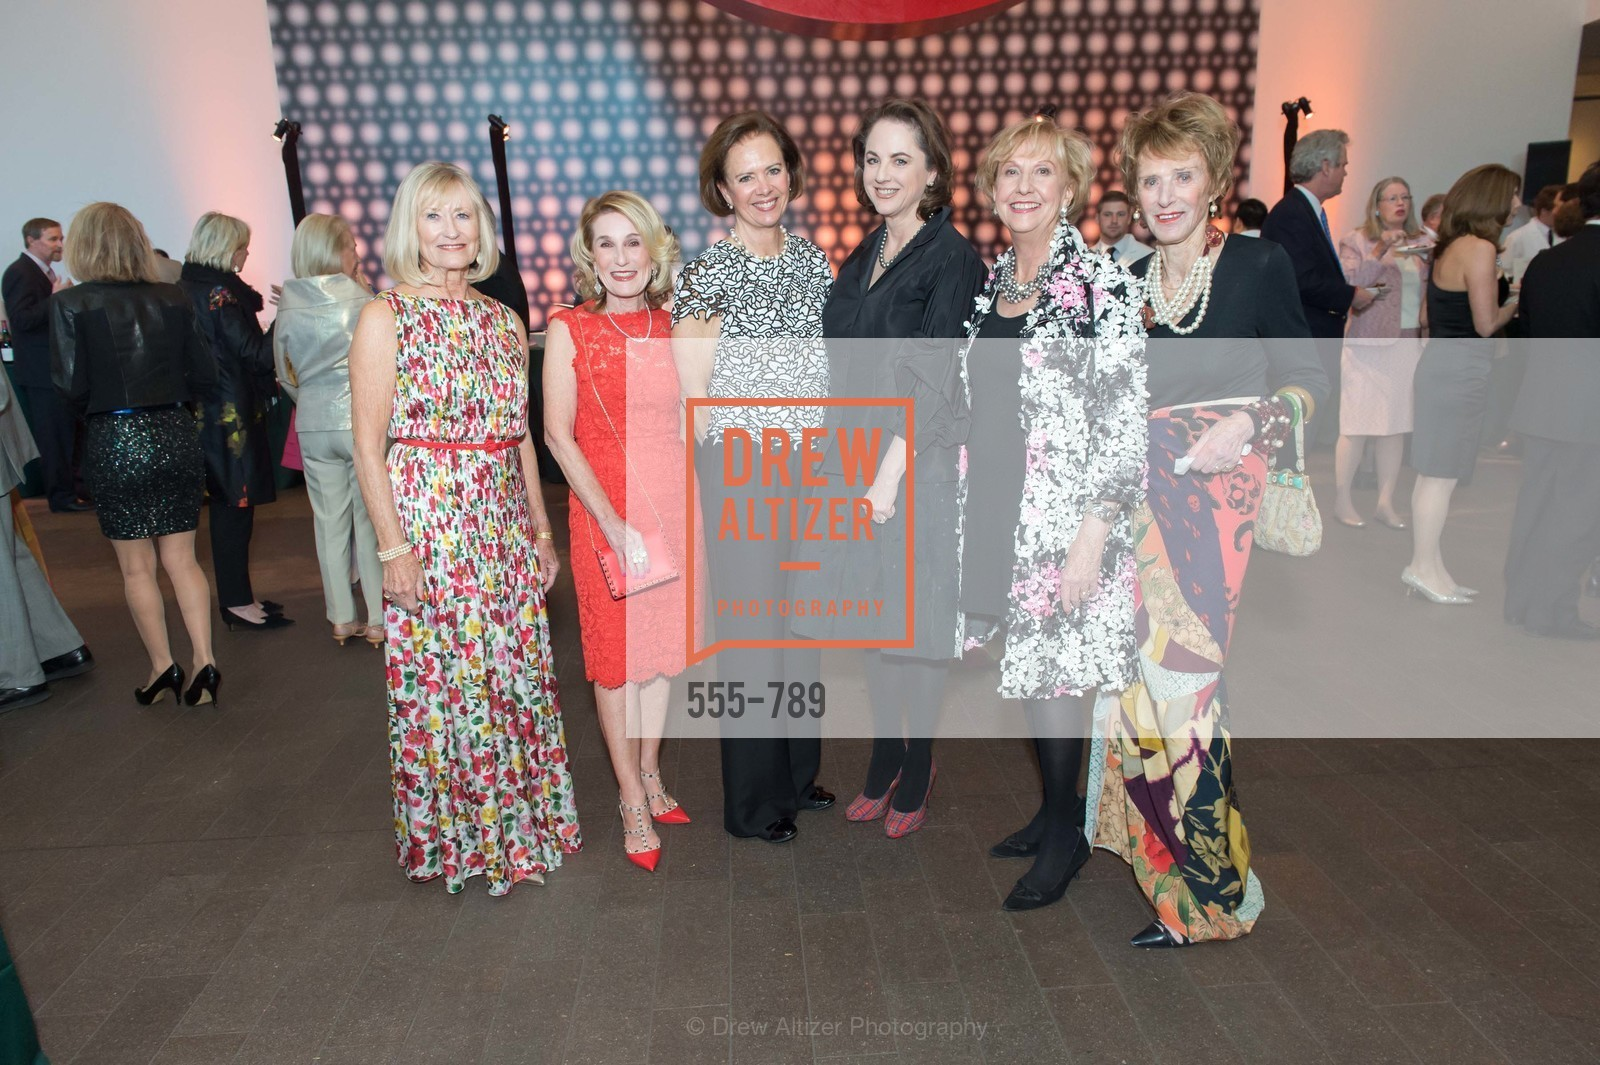 Gwen Price, Lorna Meyer Calas, Kaki DeSautels, Lisa Harris, Judith Heuser, Vera Carpeneti, ALONZO KING LINE'S Ballet Spring Gala 2015, US, April 12th, 2015,Drew Altizer, Drew Altizer Photography, full-service agency, private events, San Francisco photographer, photographer california